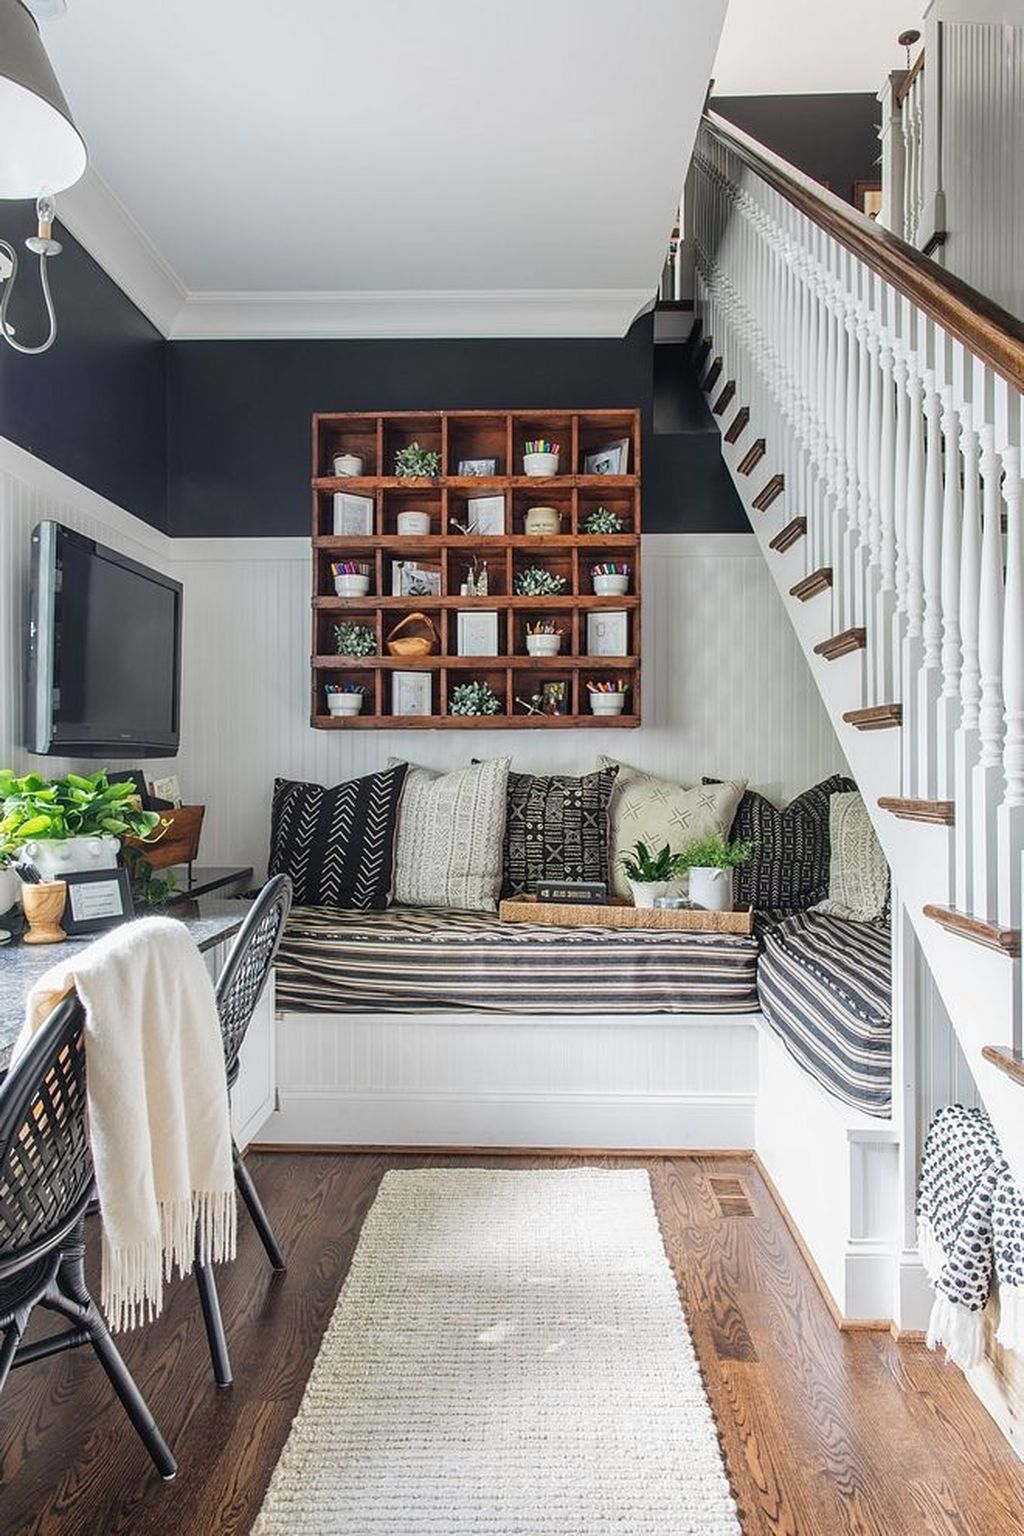 43 Cute Small Home Interior Decorating Ideas You Can Try In 2020